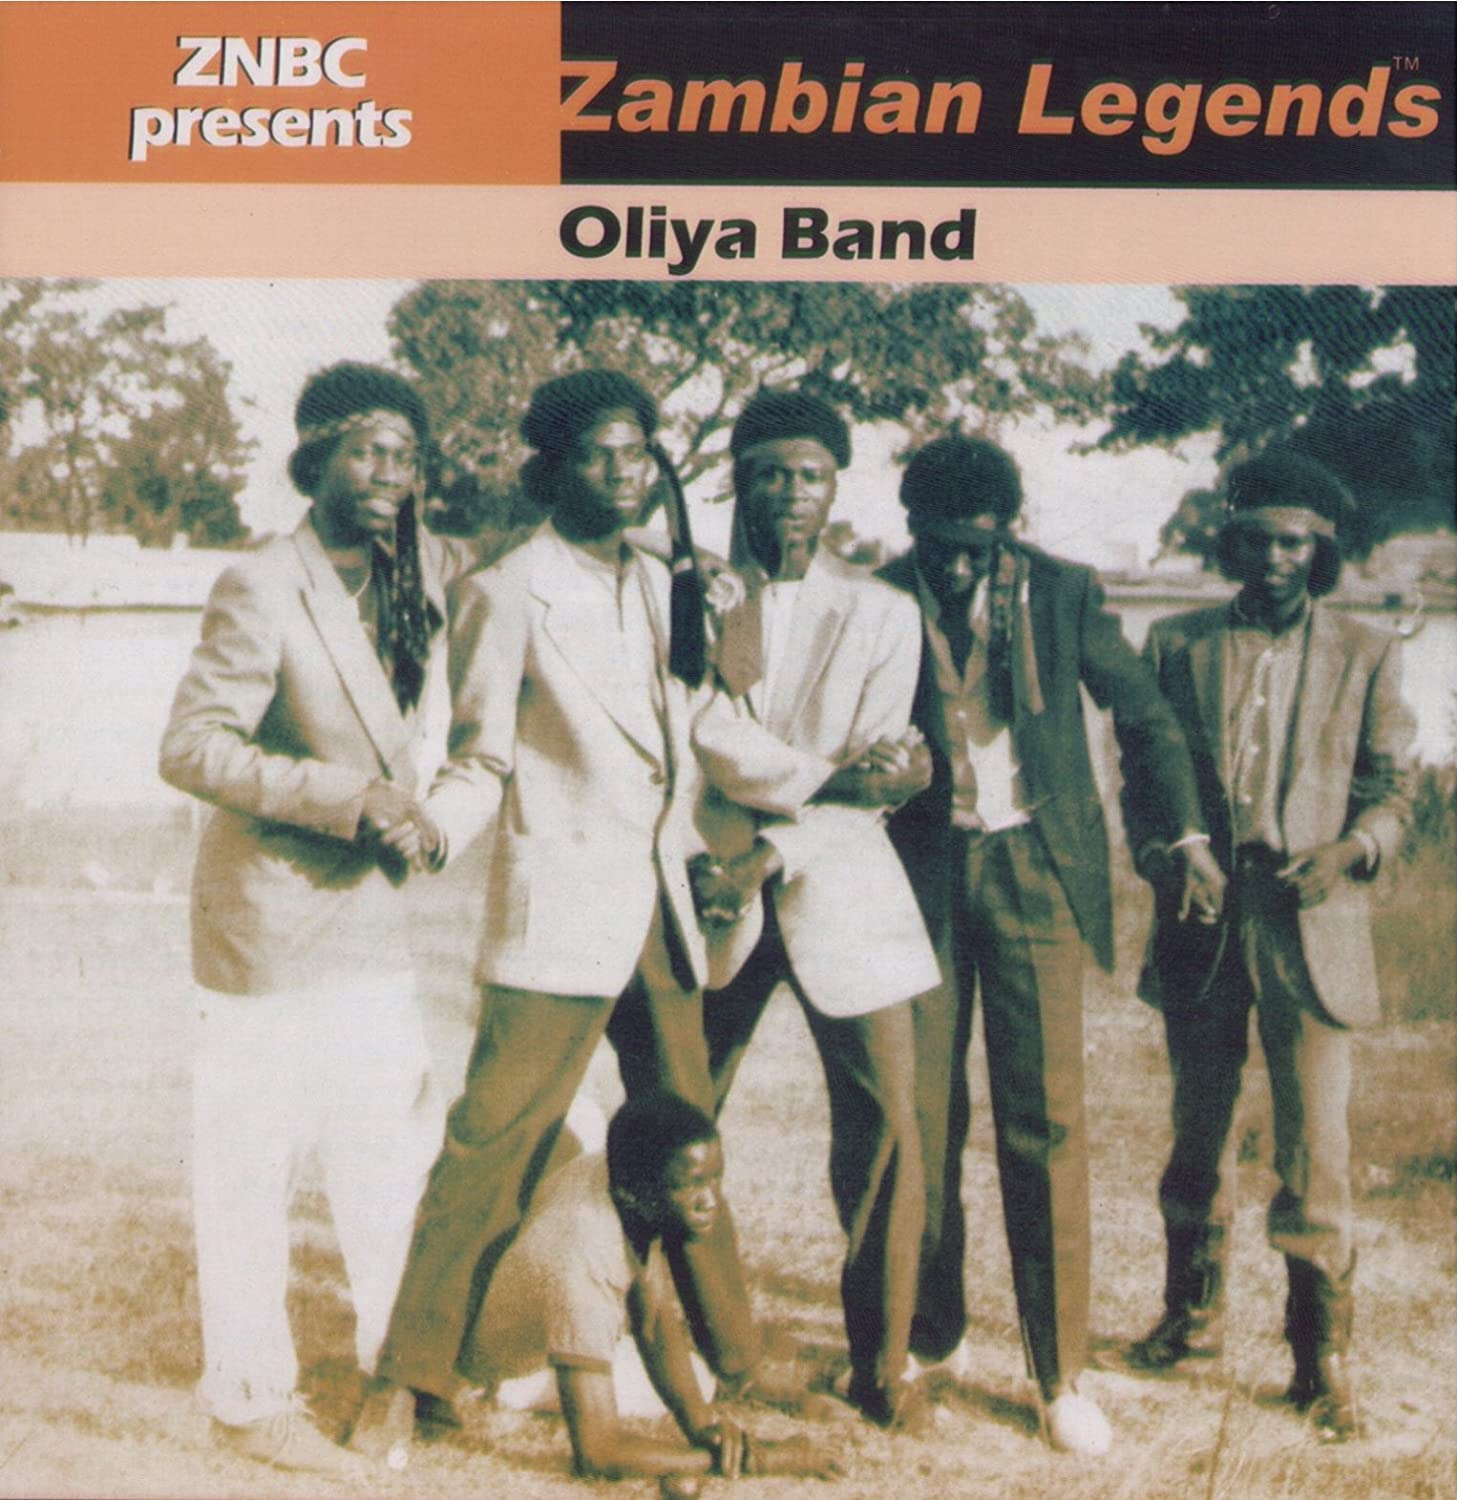 Oliya Band - Znbc Presents Zambian Legends album lp - afrosunny- african music online- zambia